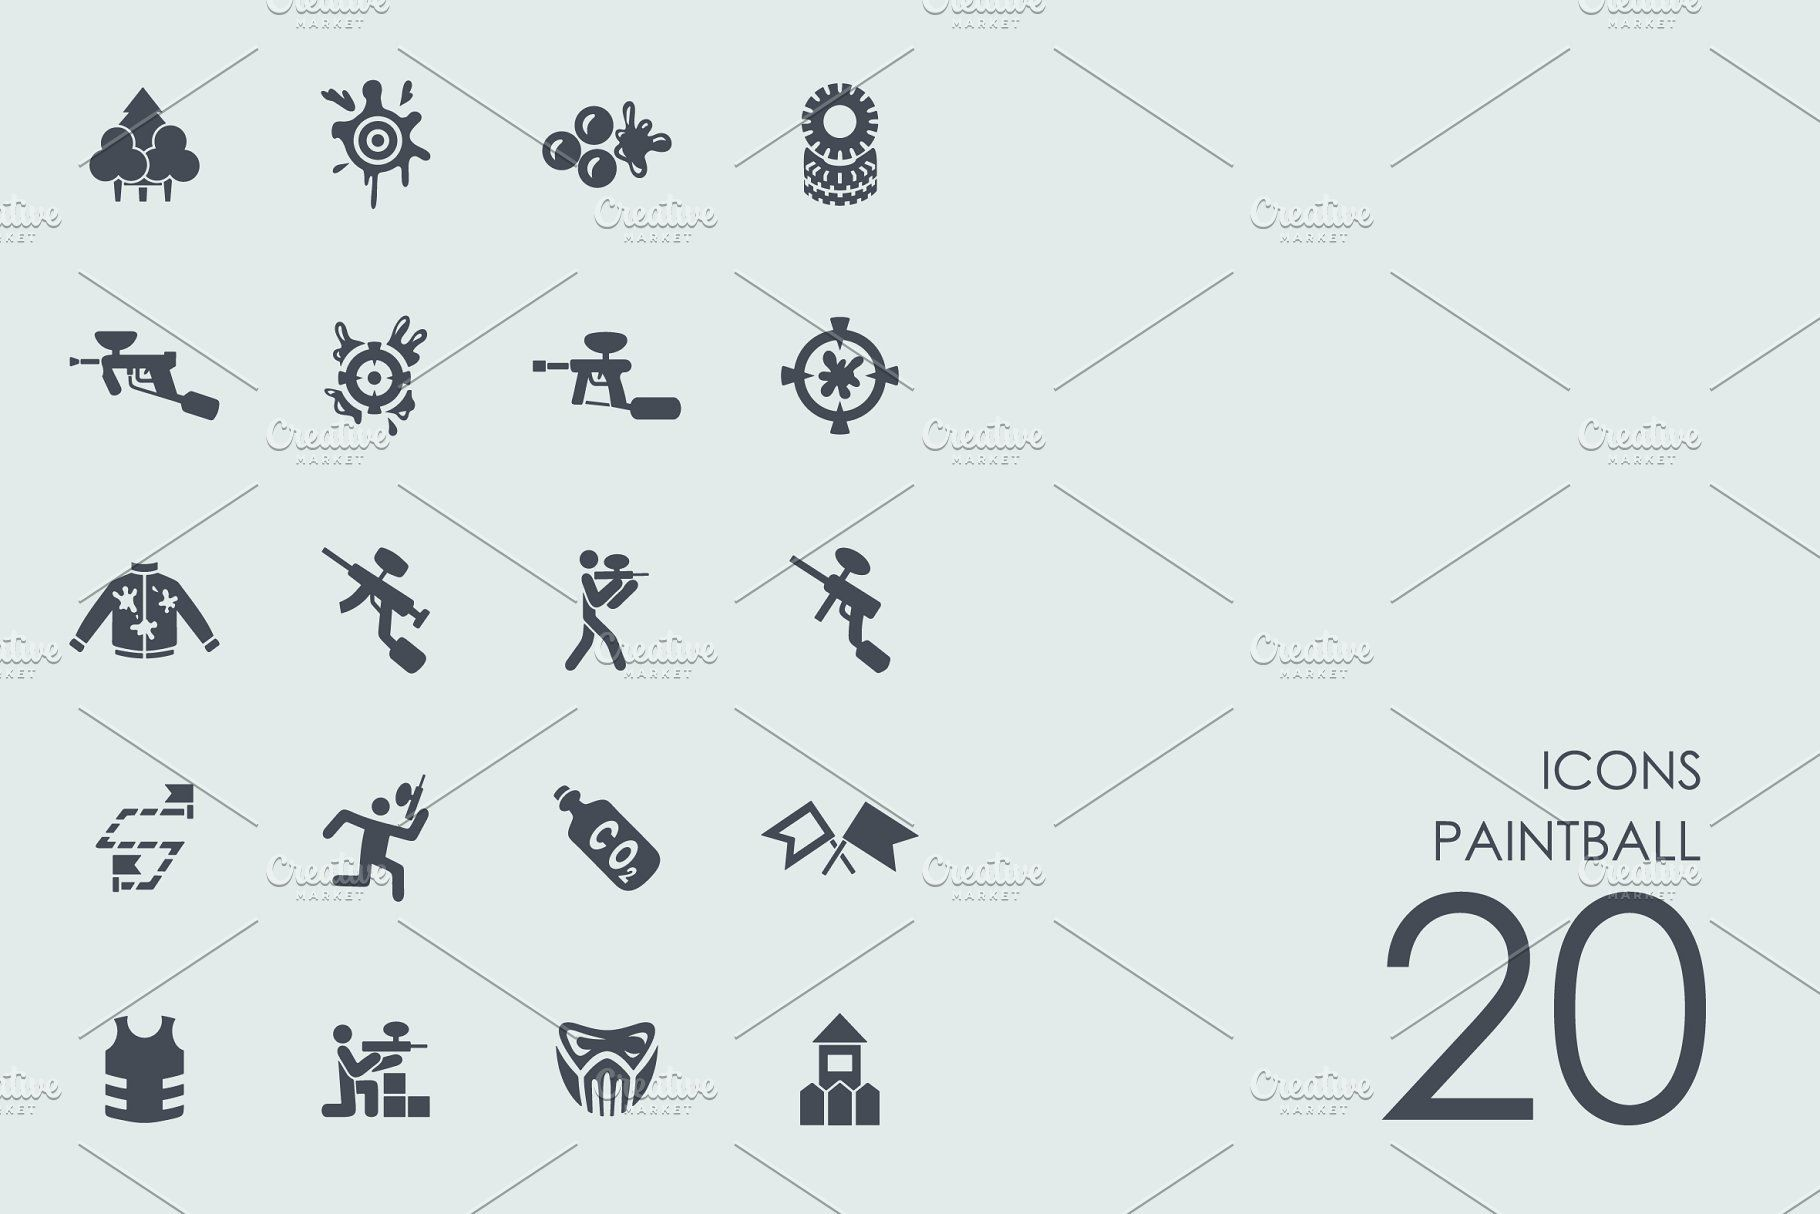 Paintball icons PaintballiconsIcons Graphic